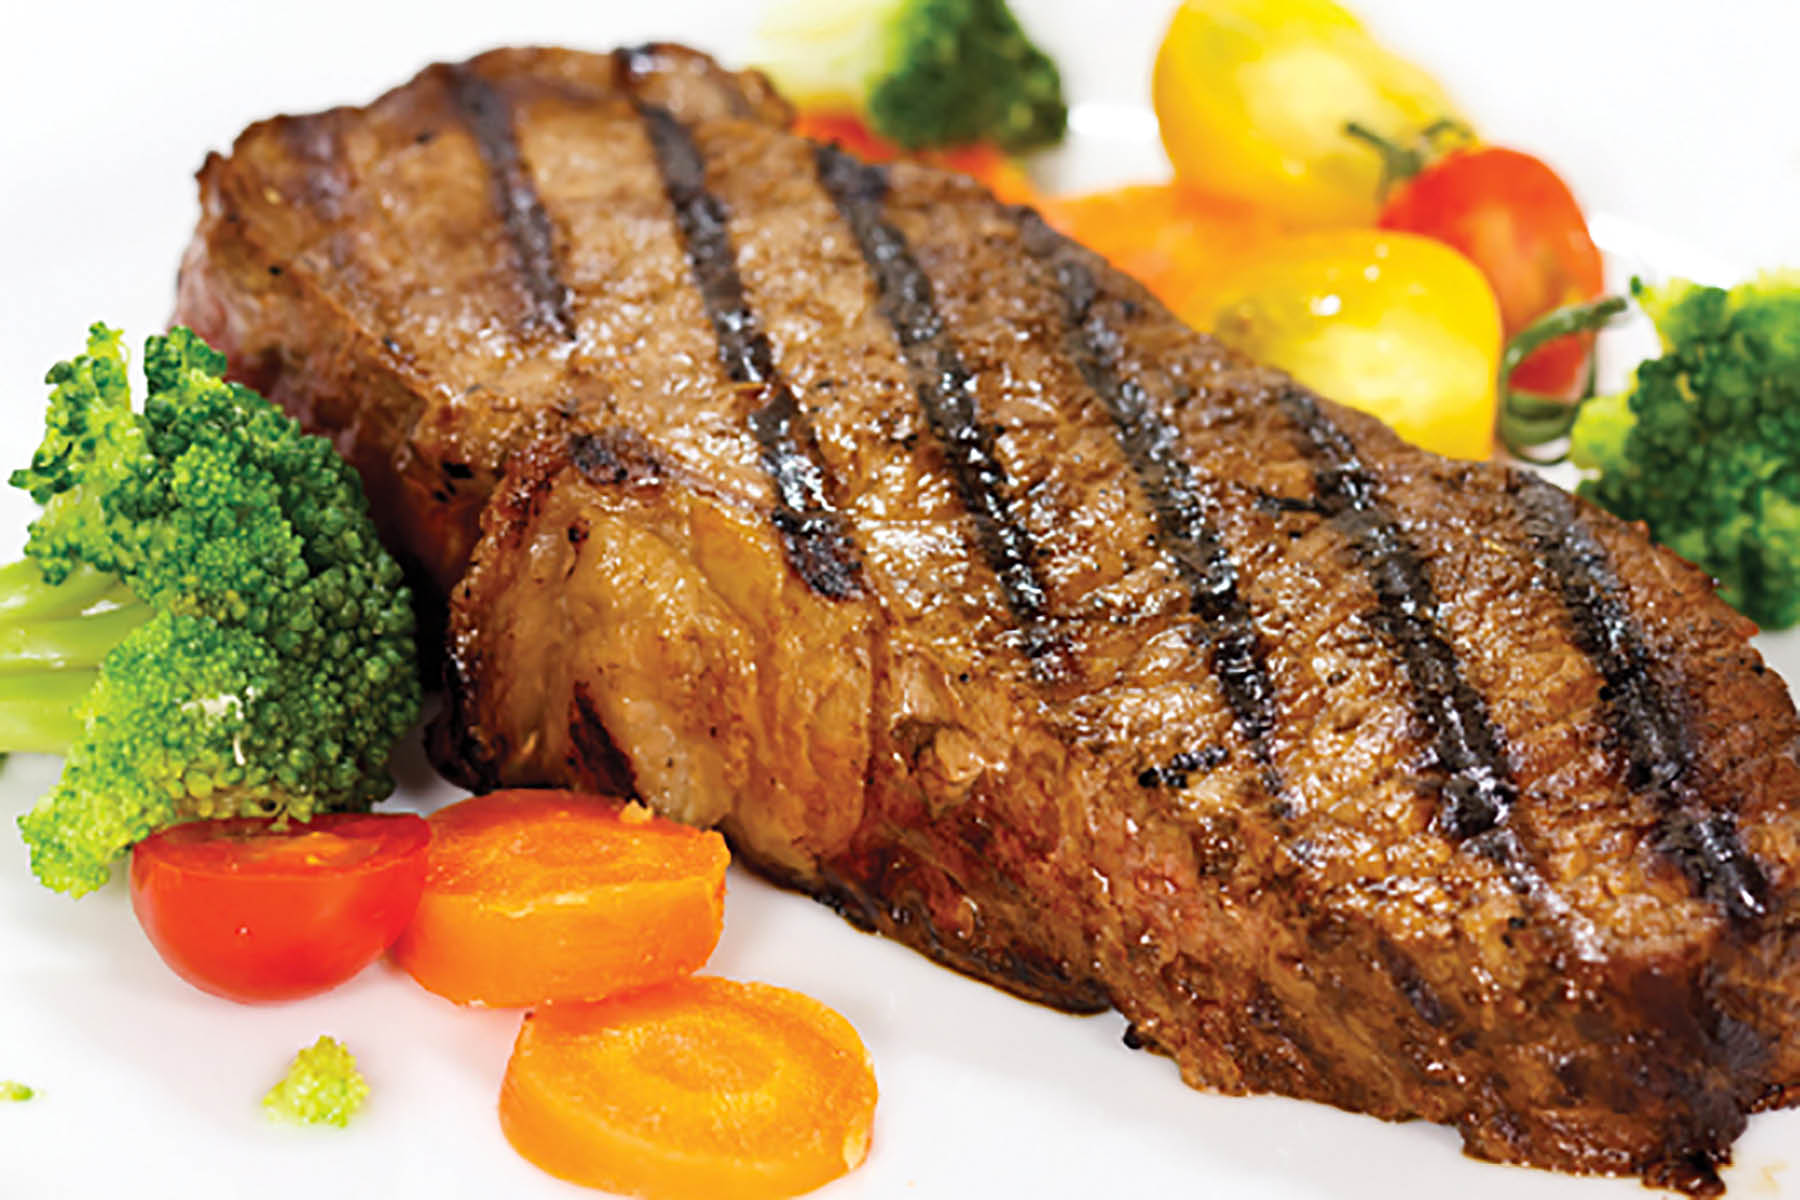 steak; osaka grill and supreme buffet located in crofton, maryland